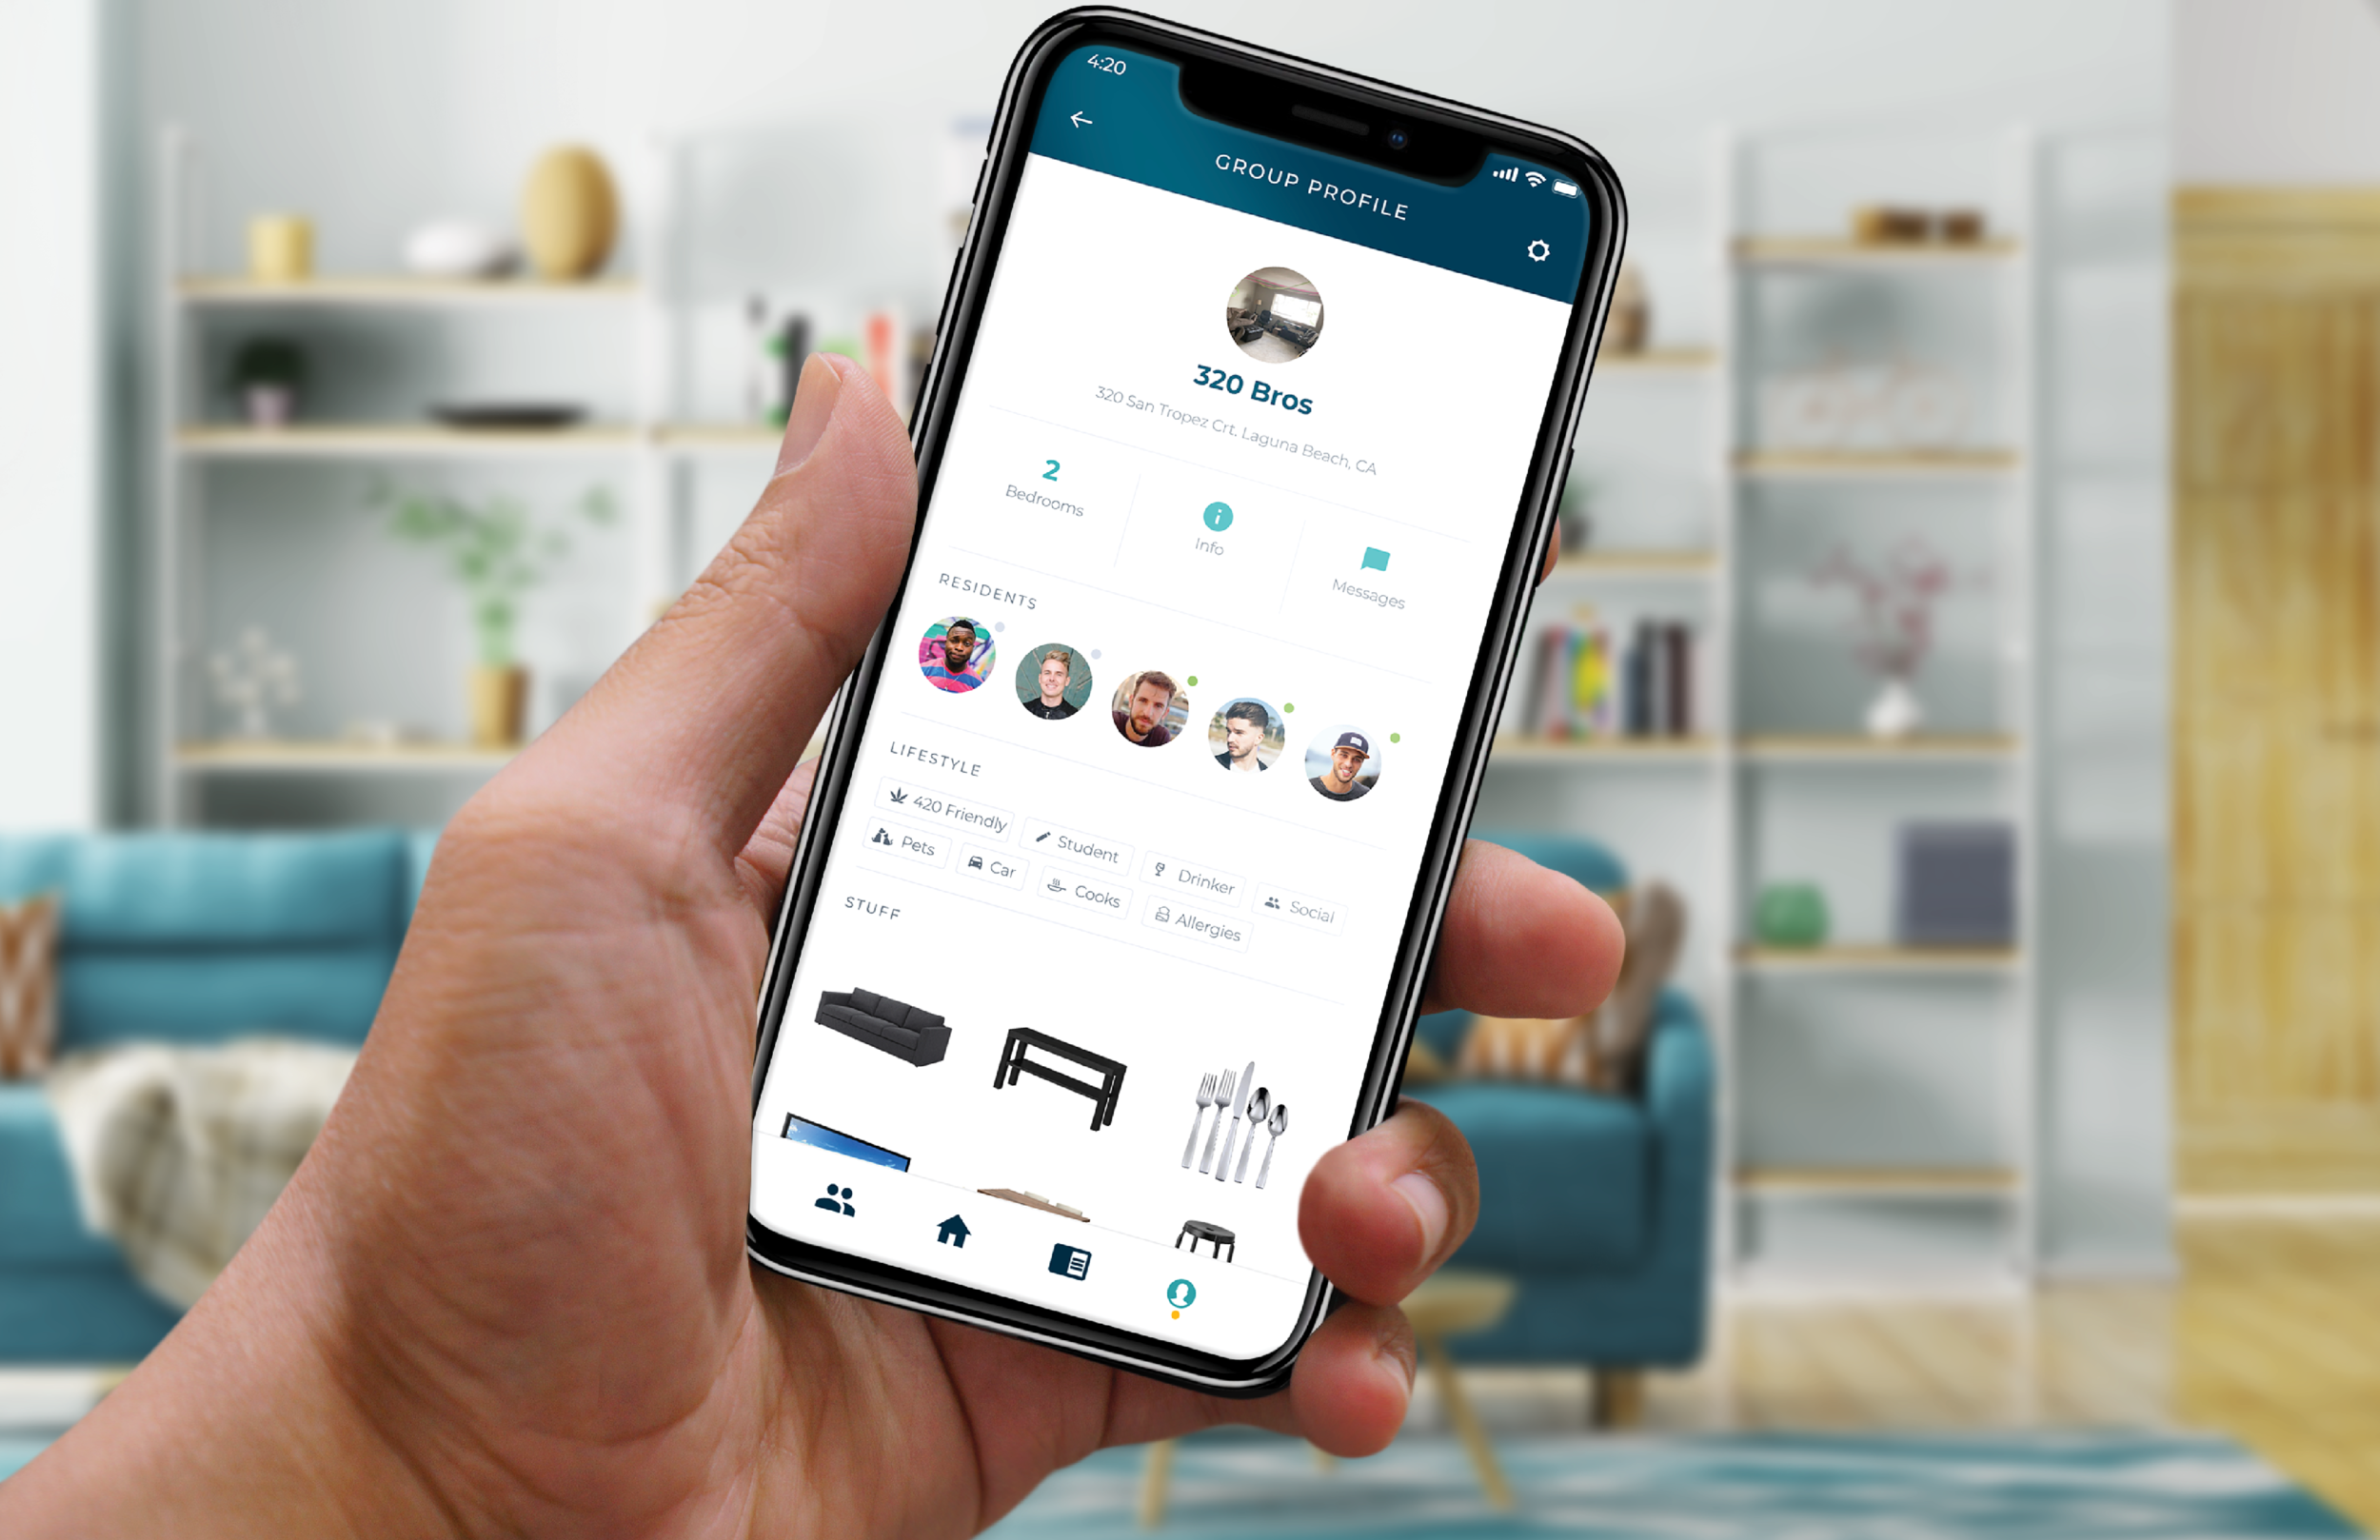 livin - rent, roommates, and beyondconnection / efficiency / organizedRoommate conflict is a widespread issue among students and other co-habitating groups of people. LIVIN uses crowd sourcing and an integrated calculator to help roommates navigate the home-sharing experience from start to finish.